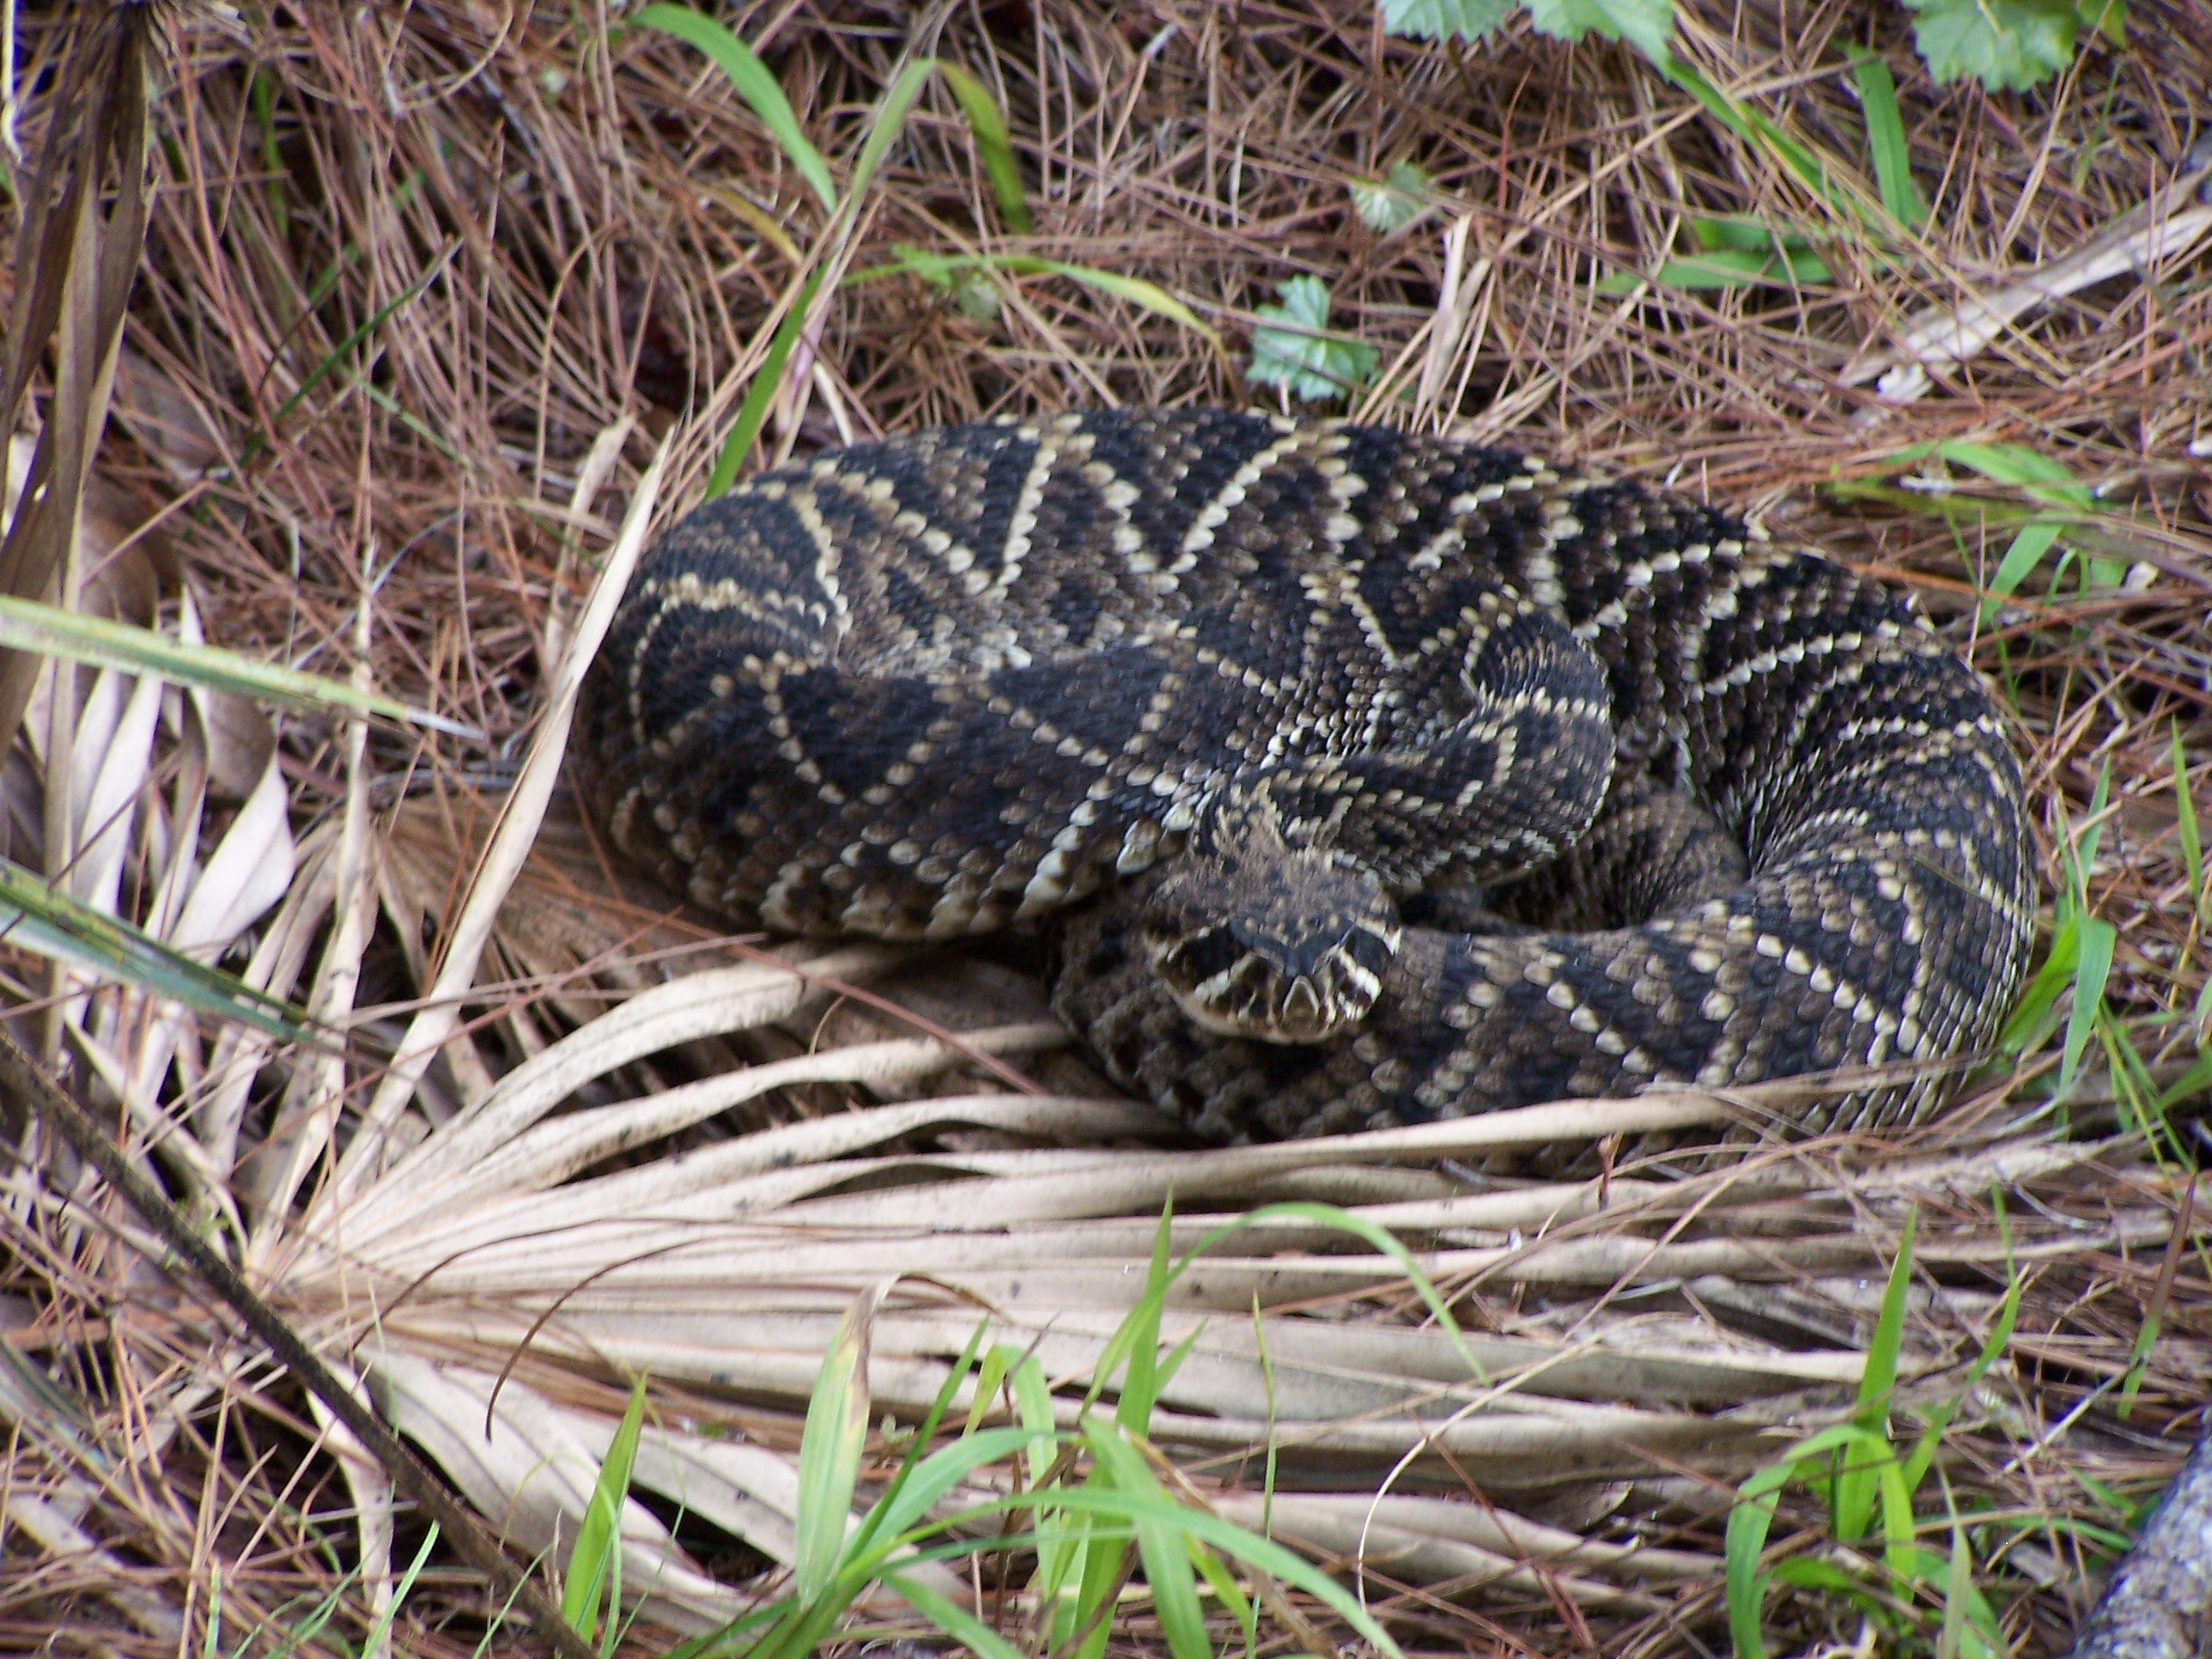 Eastern Diamondback Rattlesnake Photo Album | TGO Nature Center